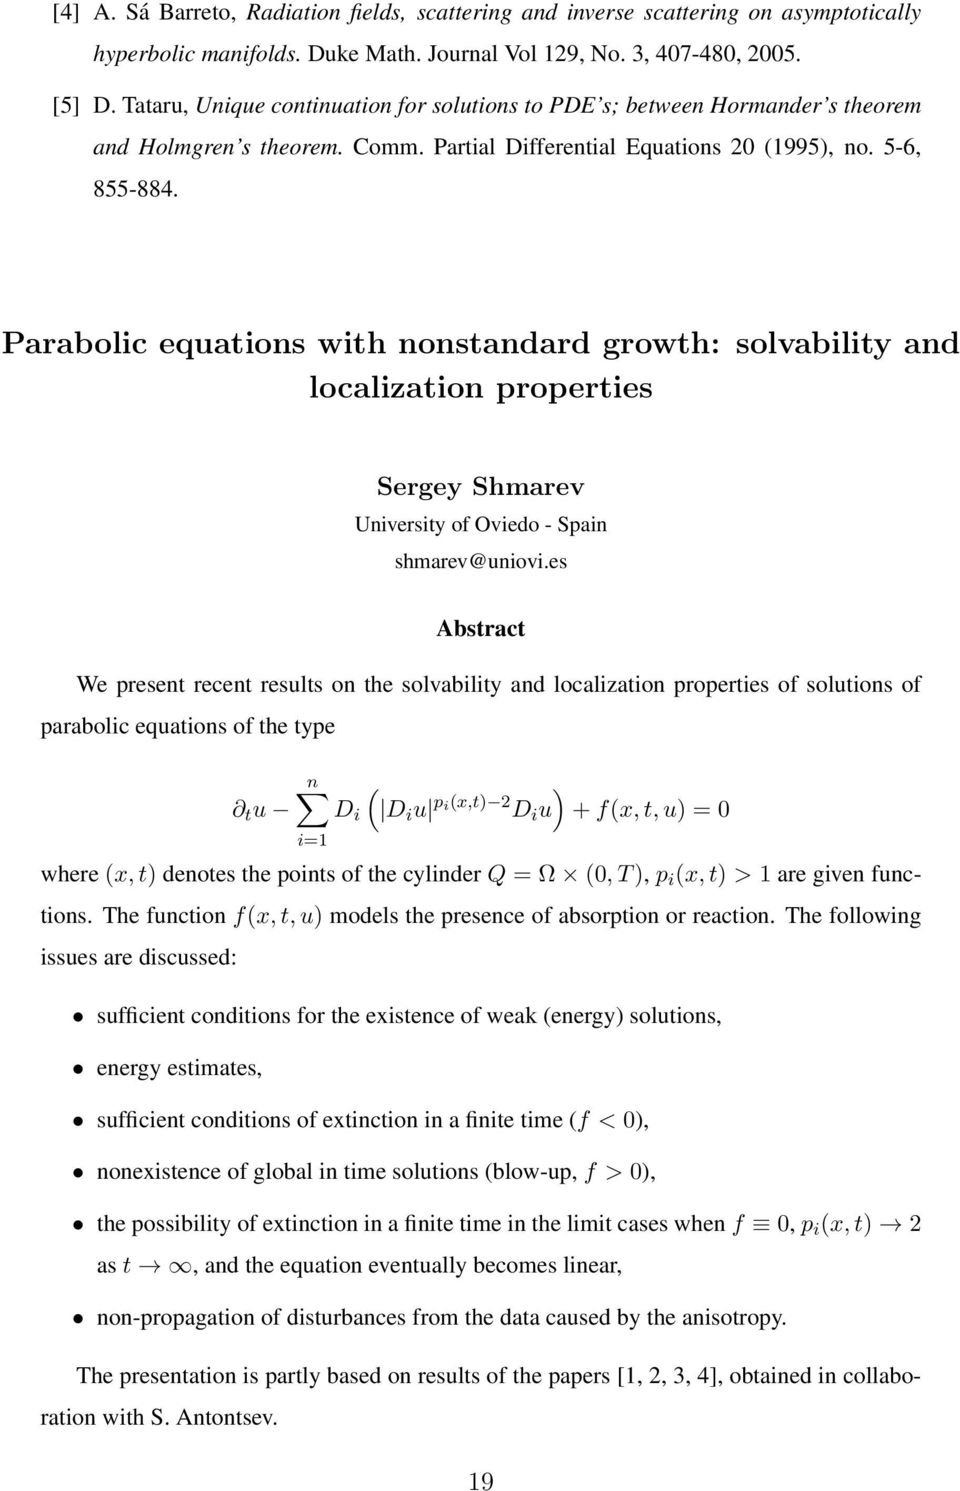 Parabolic equations with nonstandard growth: solvability and localization properties Sergey Shmarev University of Oviedo - Spain shmarev@uniovi.